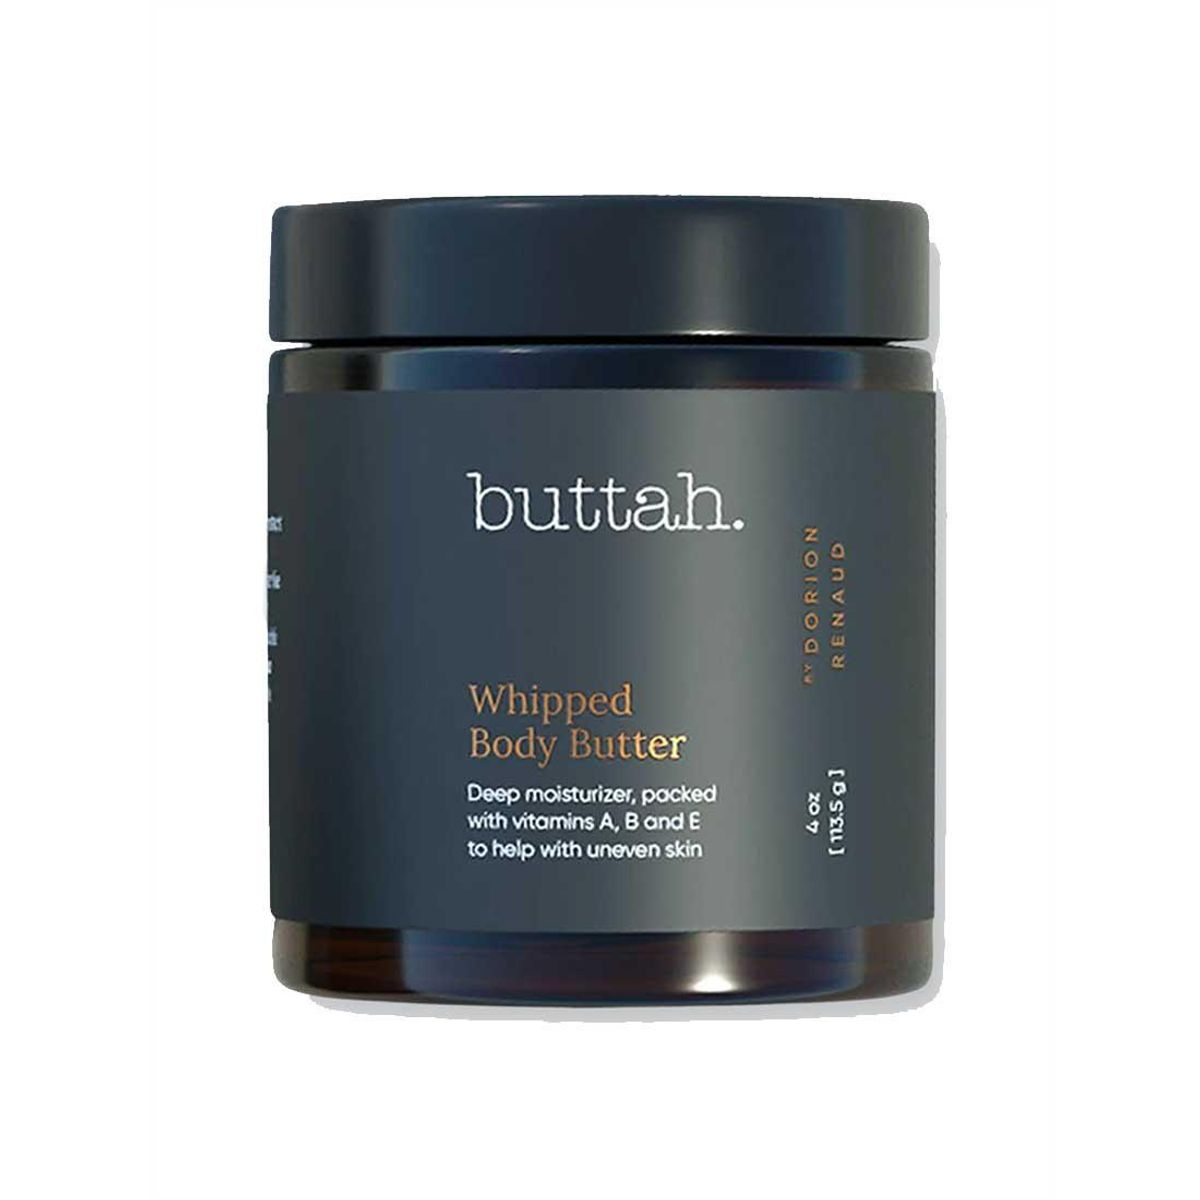 buttah skin whipped body butter